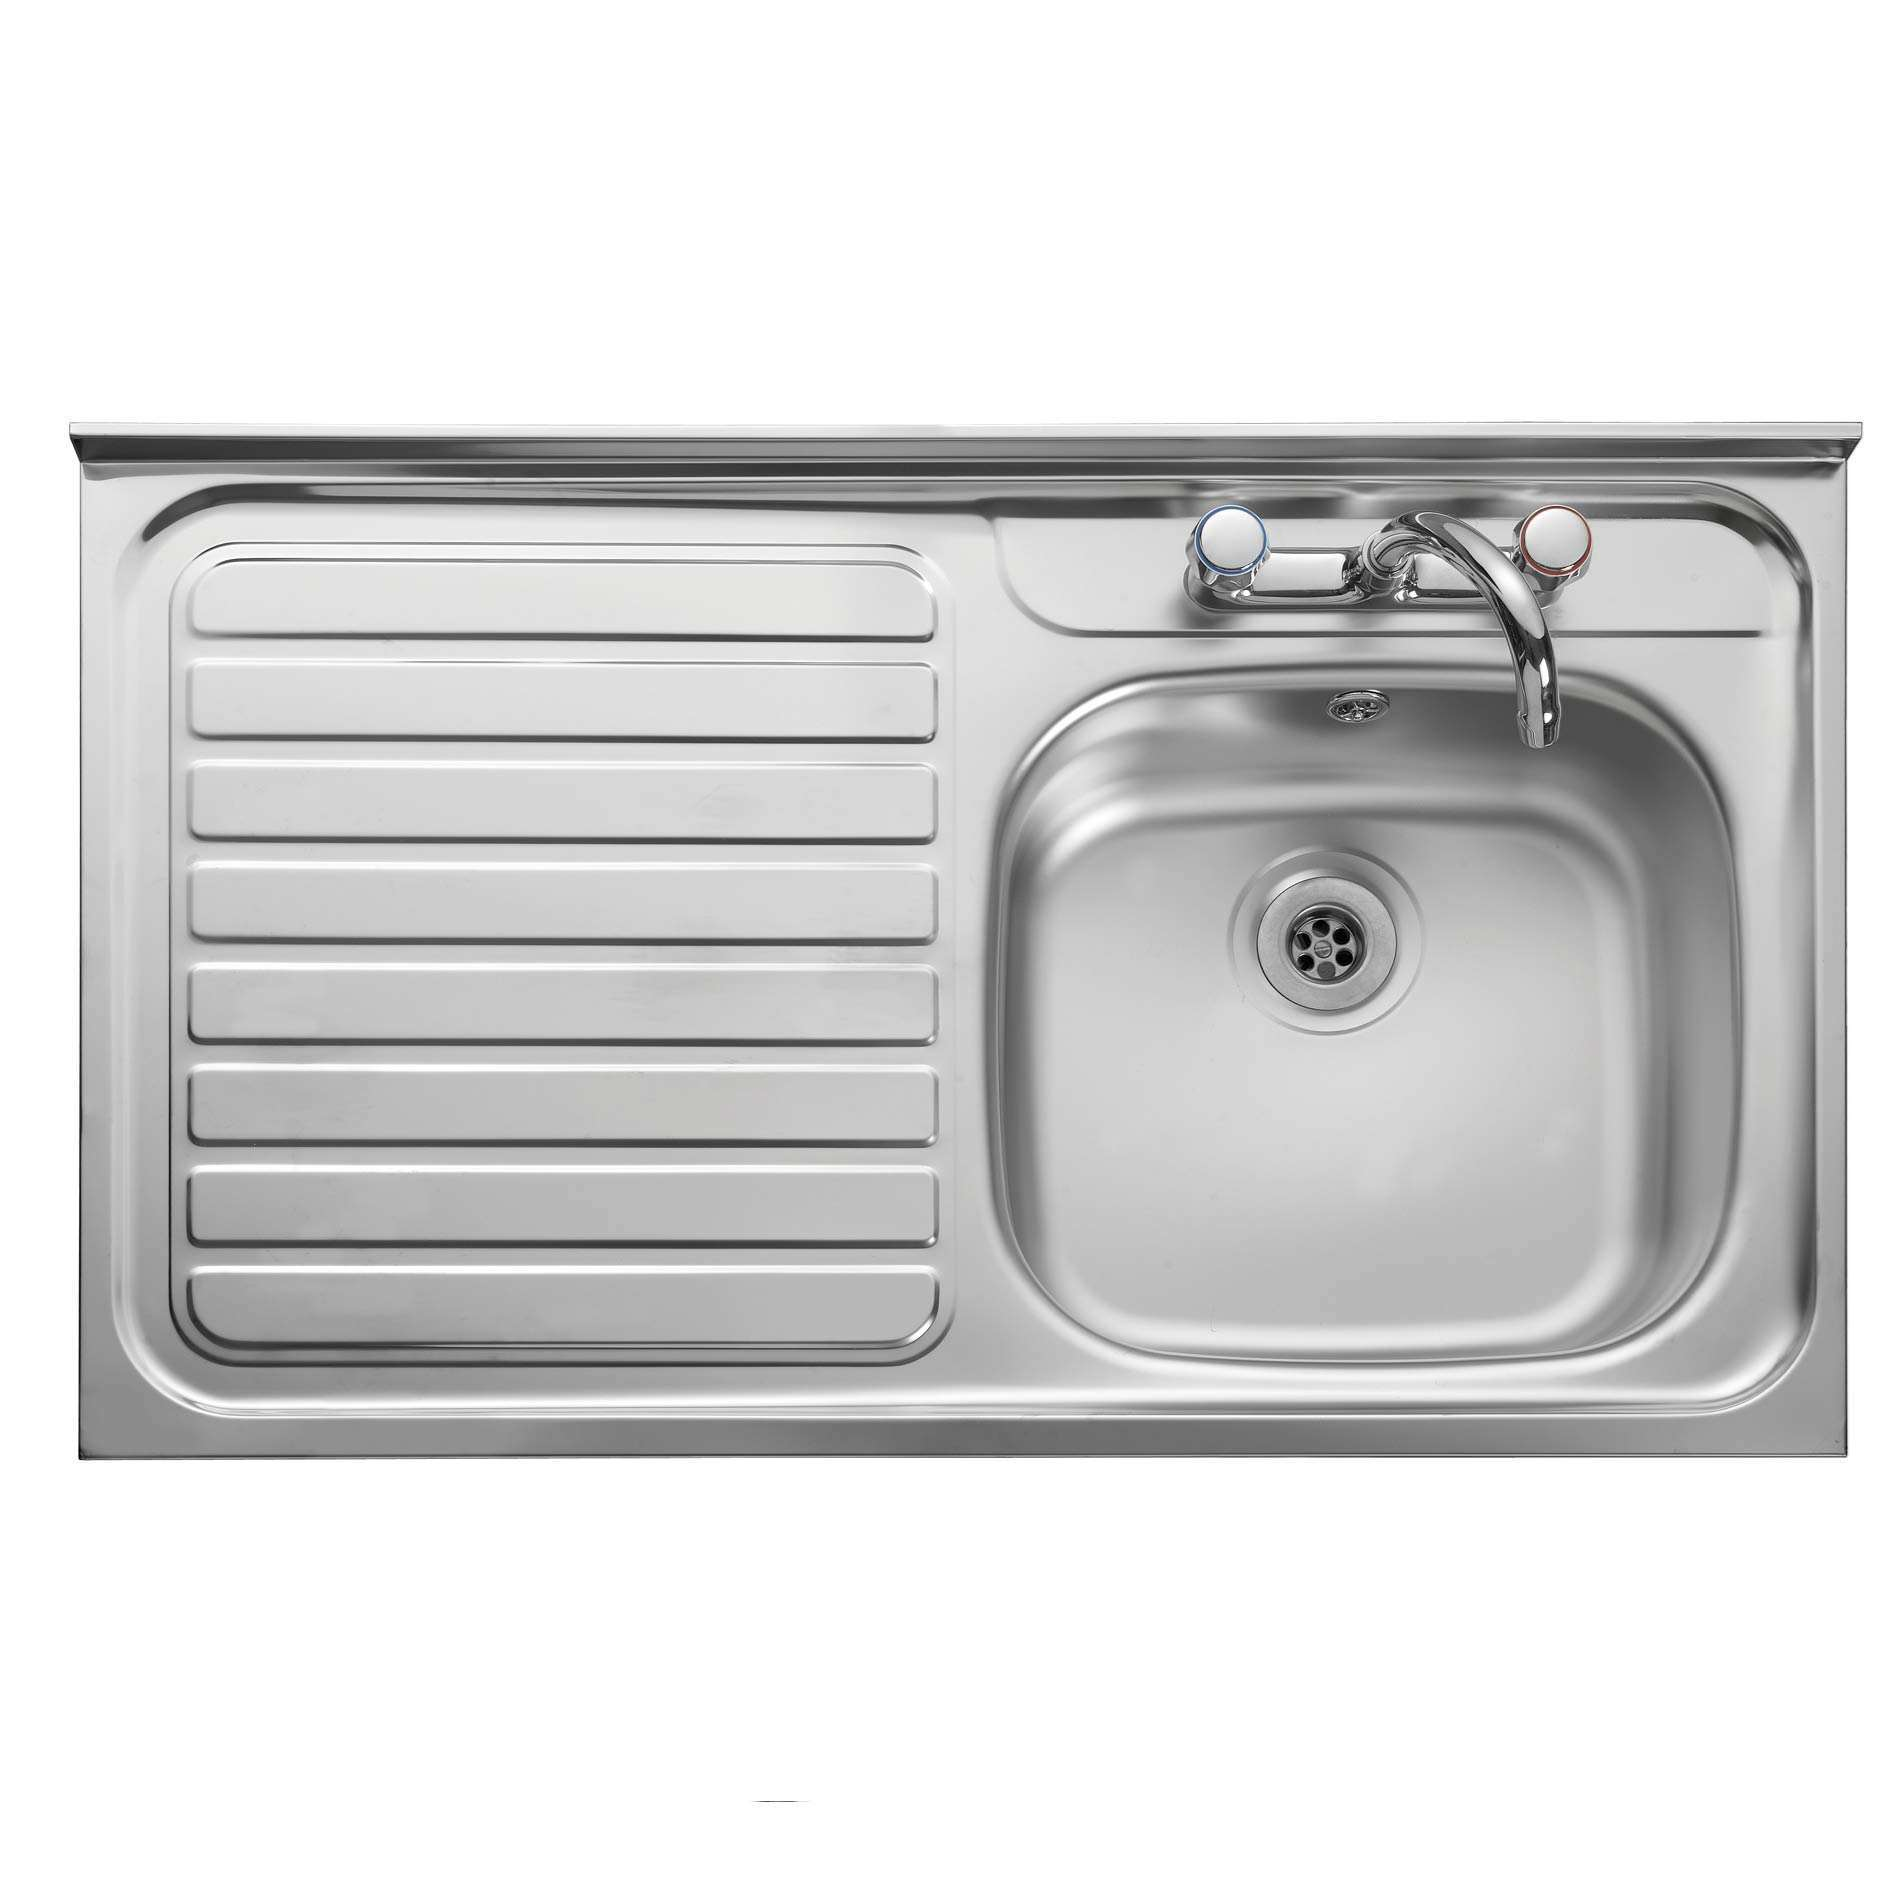 Leisure Contract Lc106 Stainless Steel Sink Kitchen